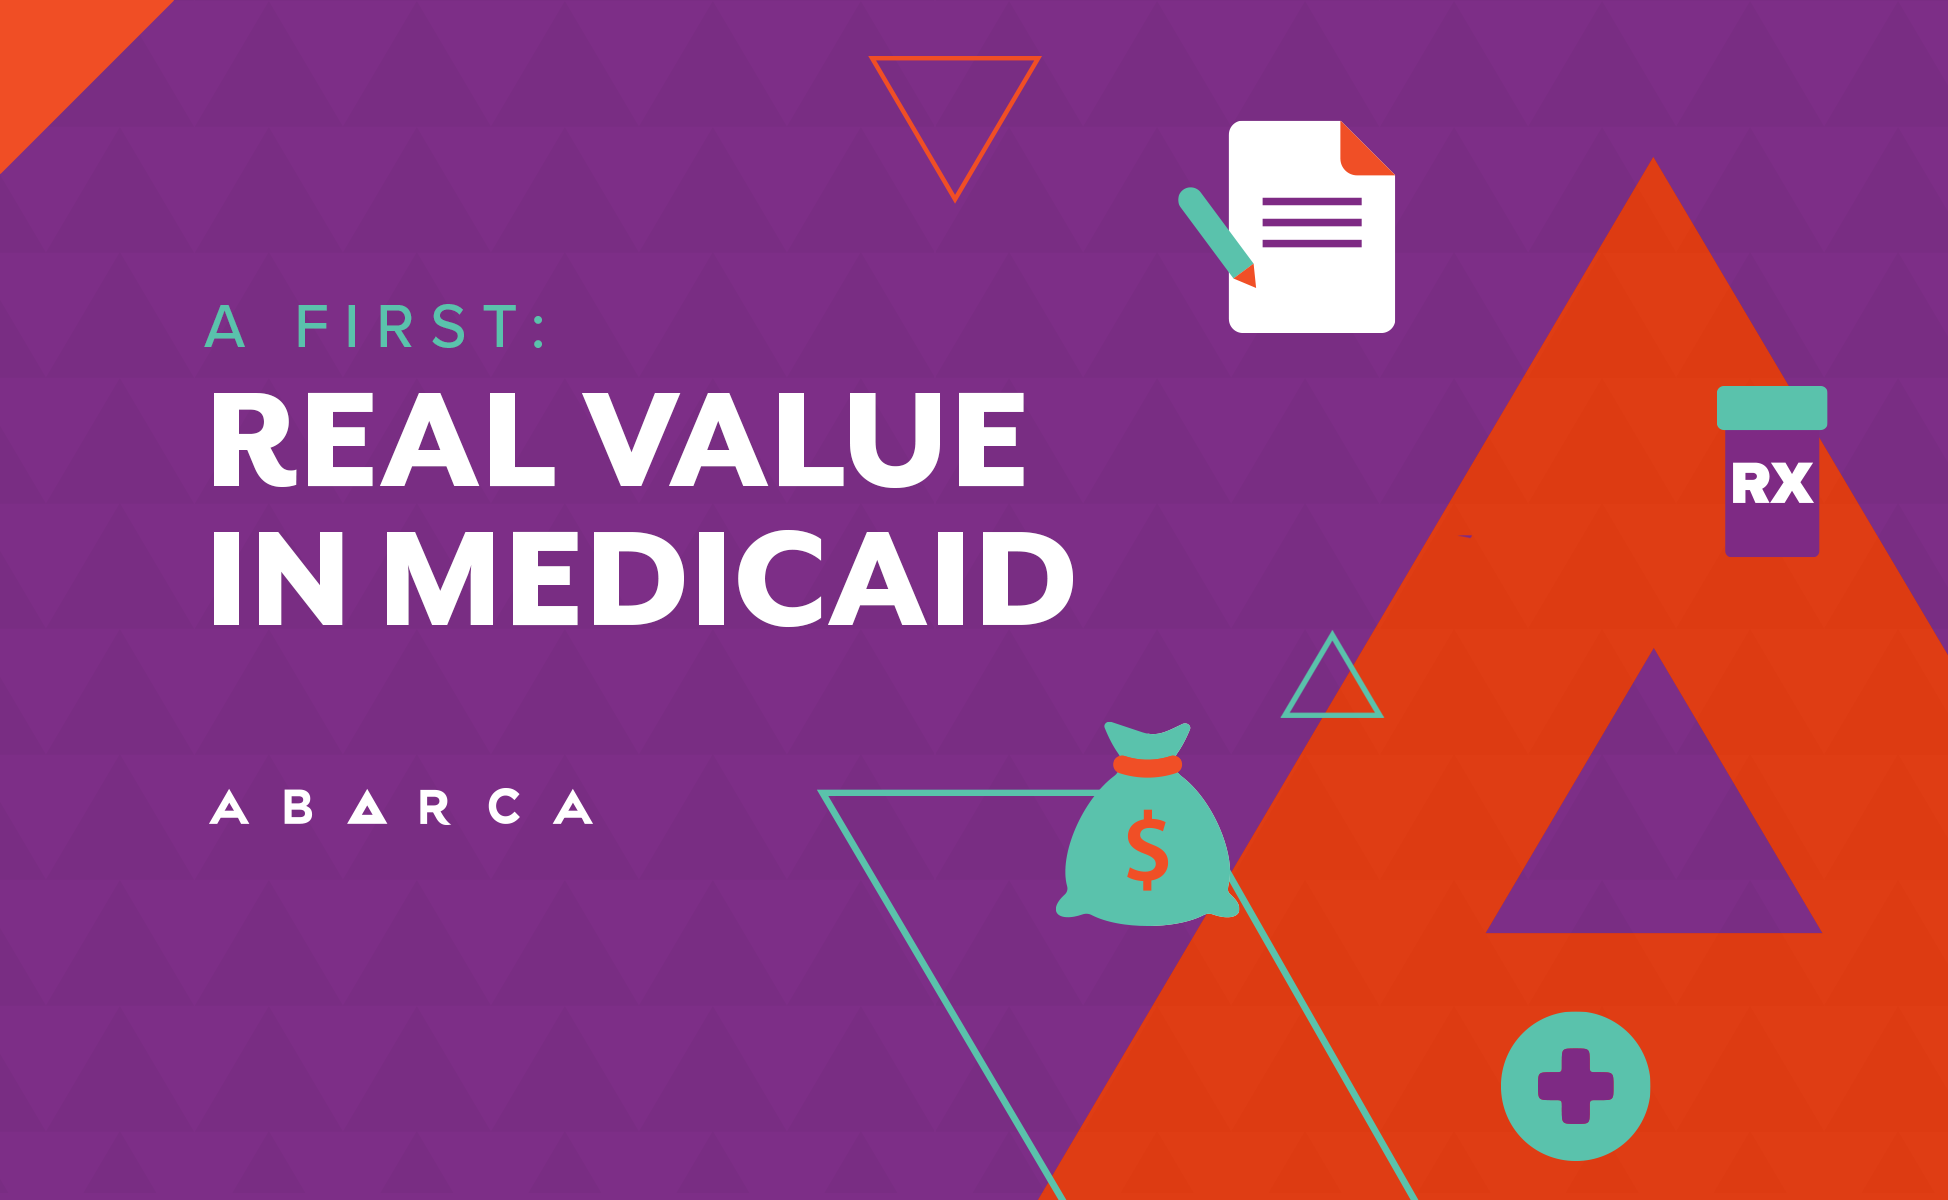 Abarca delivers real value in Medicaid